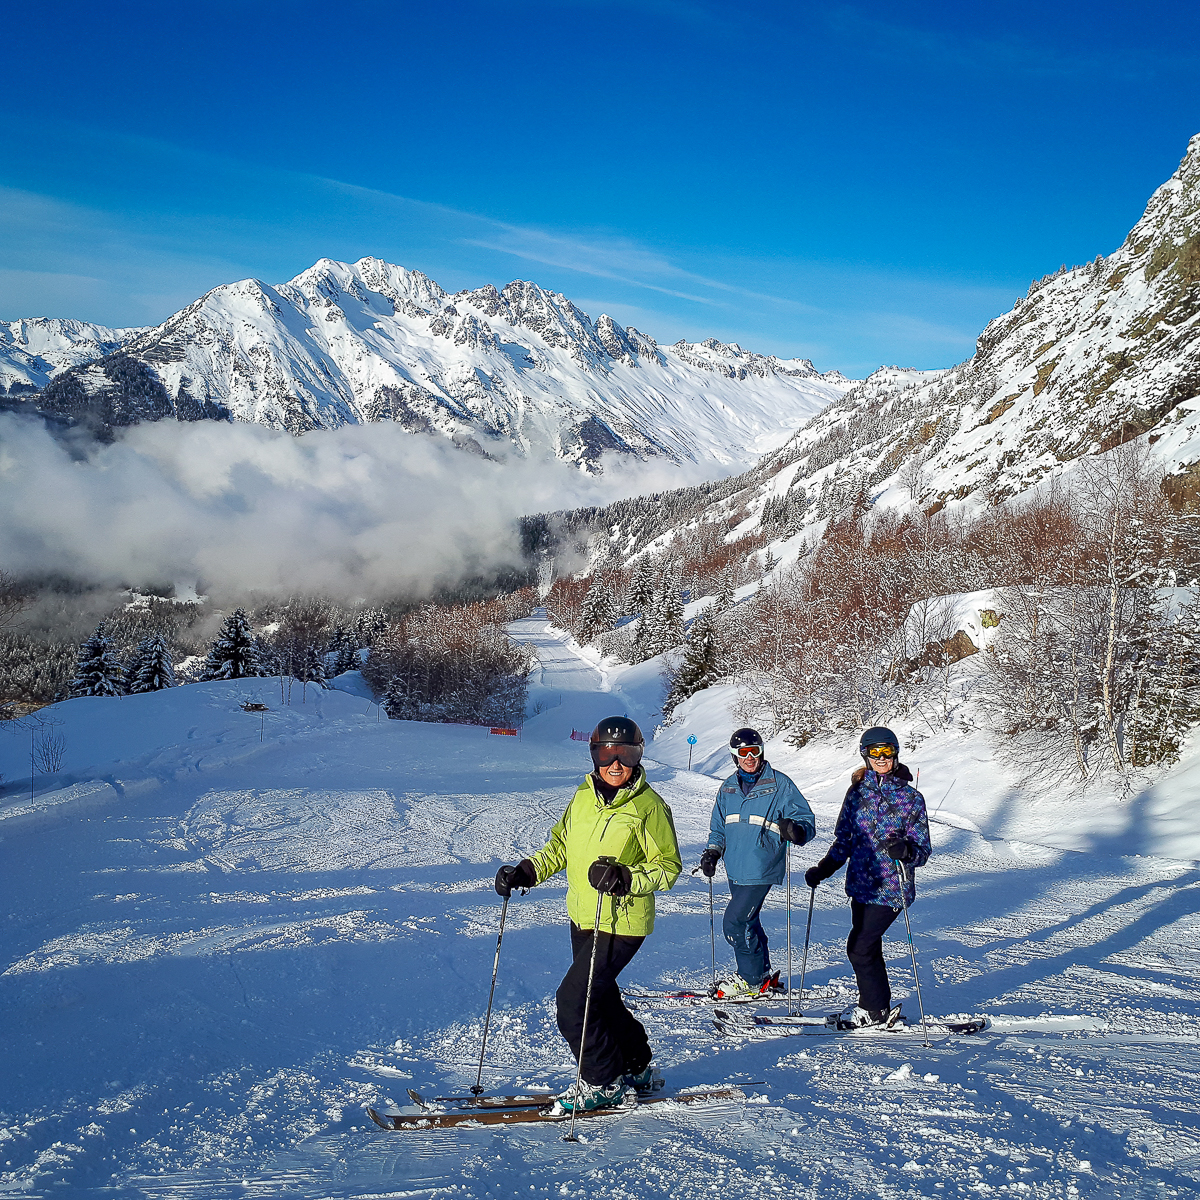 skiing holidays in 2021